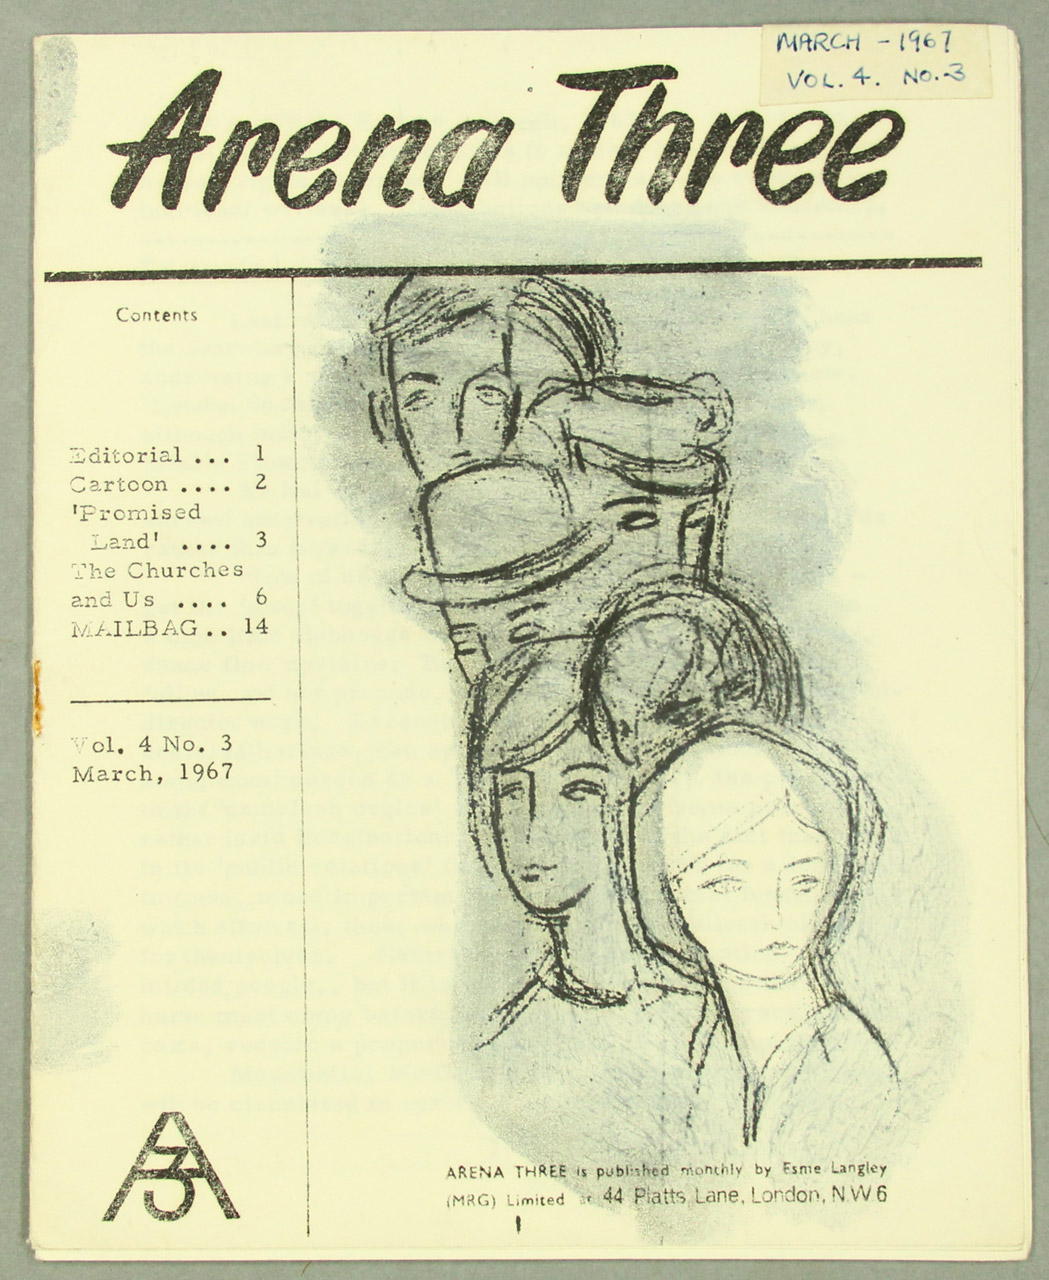 cover of a zine showing pencil drawings of a line of people